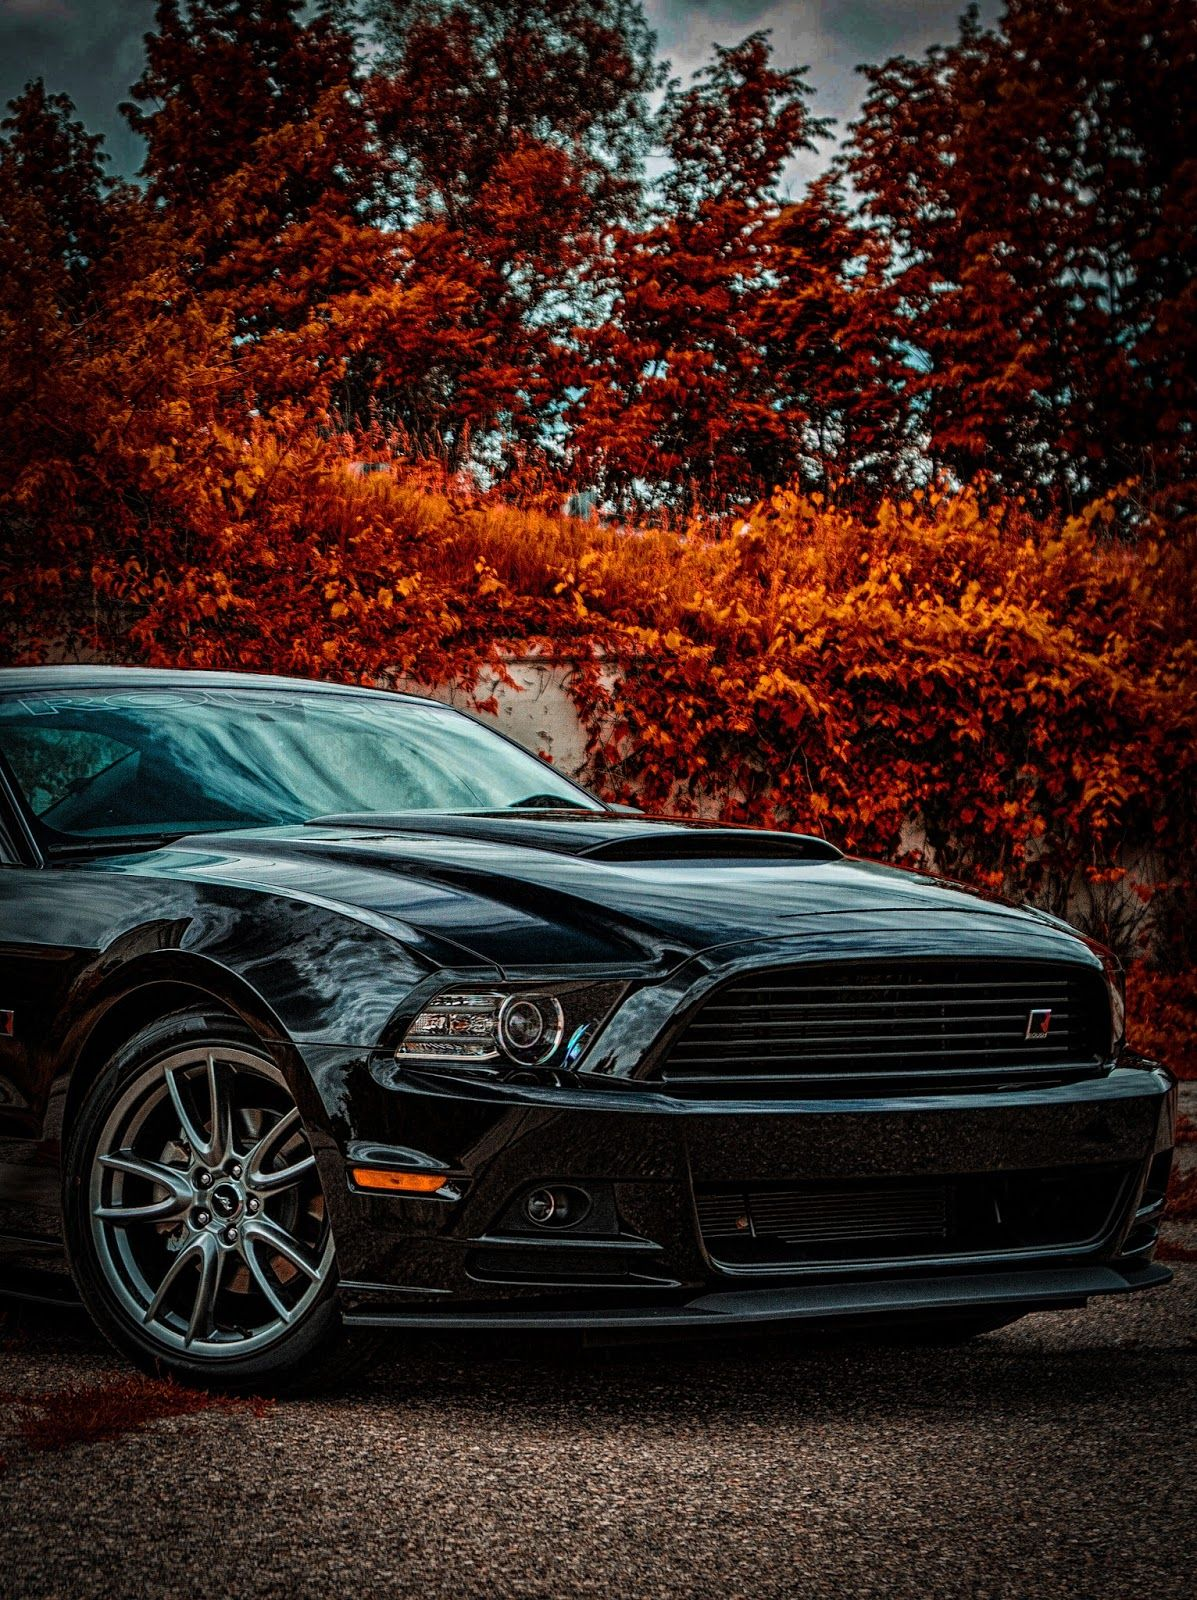 Full Hd Car Background Hd Png